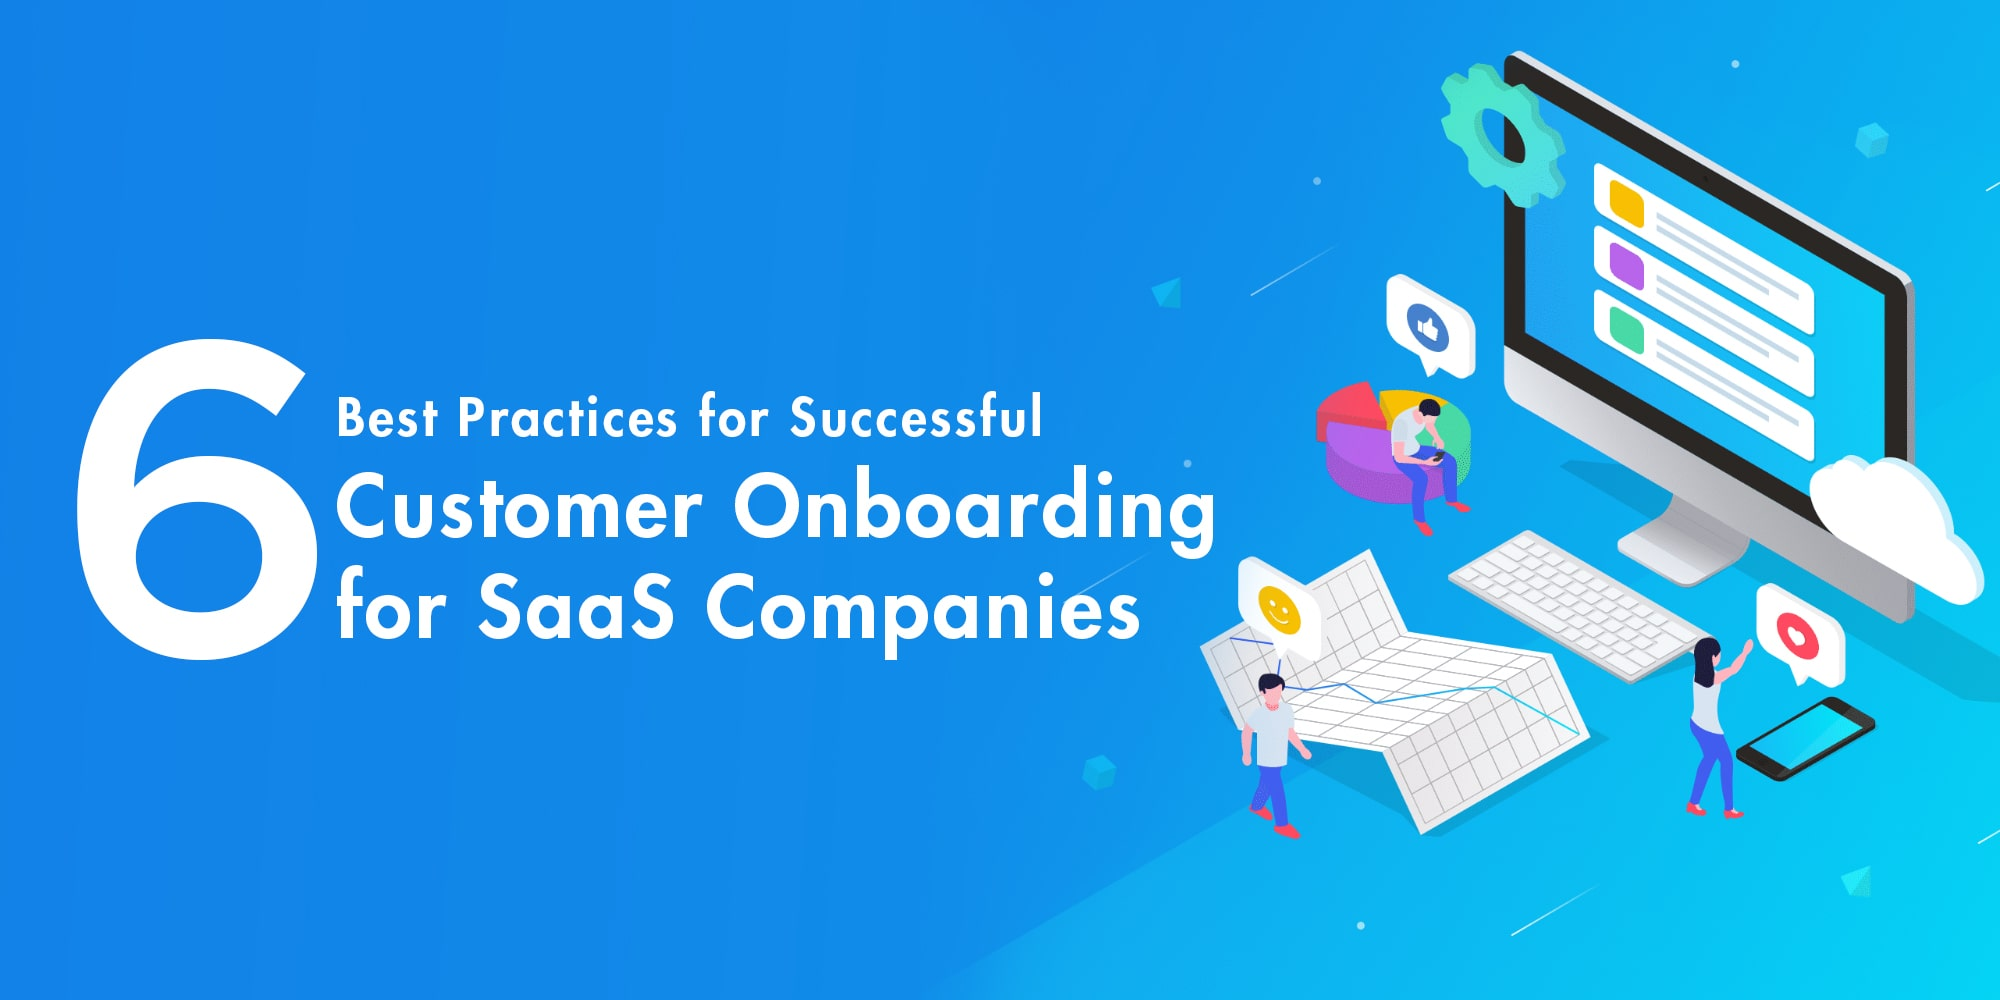 6 Best Practices for Successful Customer Onboarding for Saas Companies